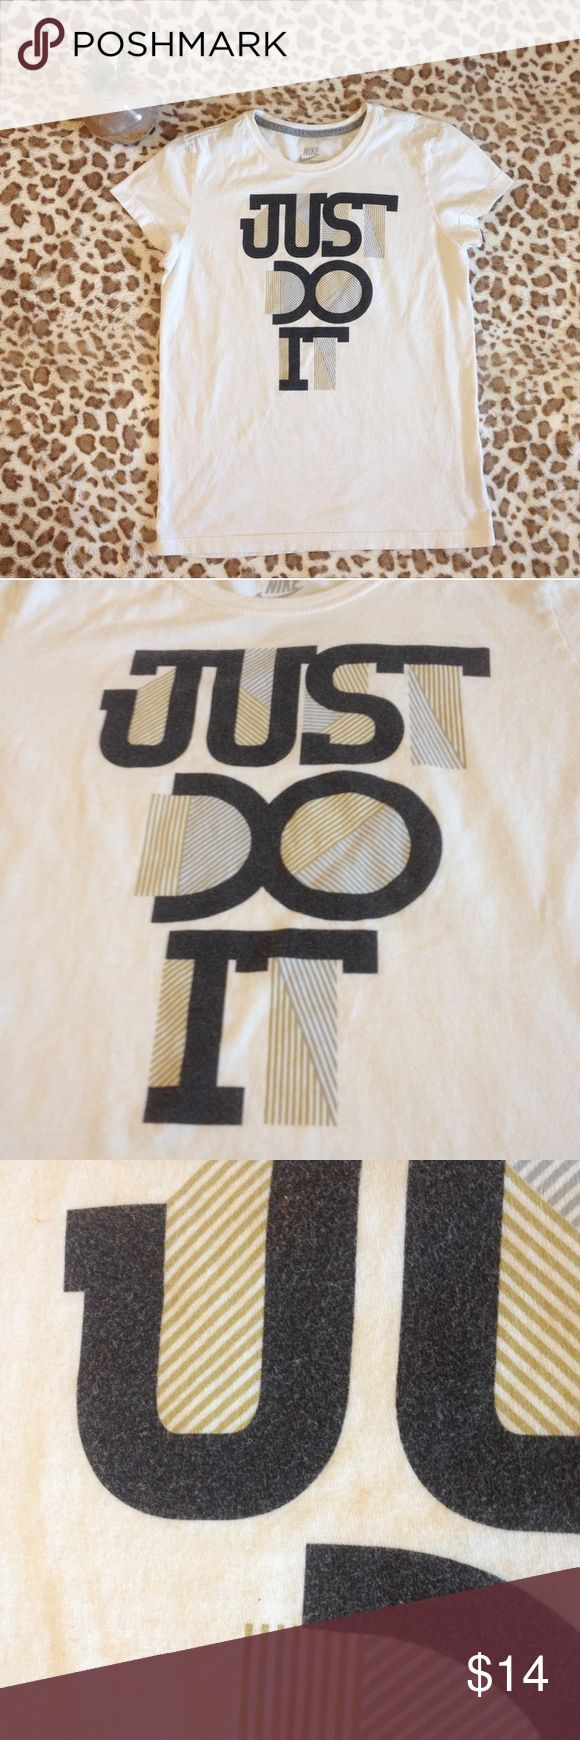 Nike Just Do It White Short Sleeve Tee Just do it tee in white with blue, green, and gray. Nike Tops Tees - Short Sleeve